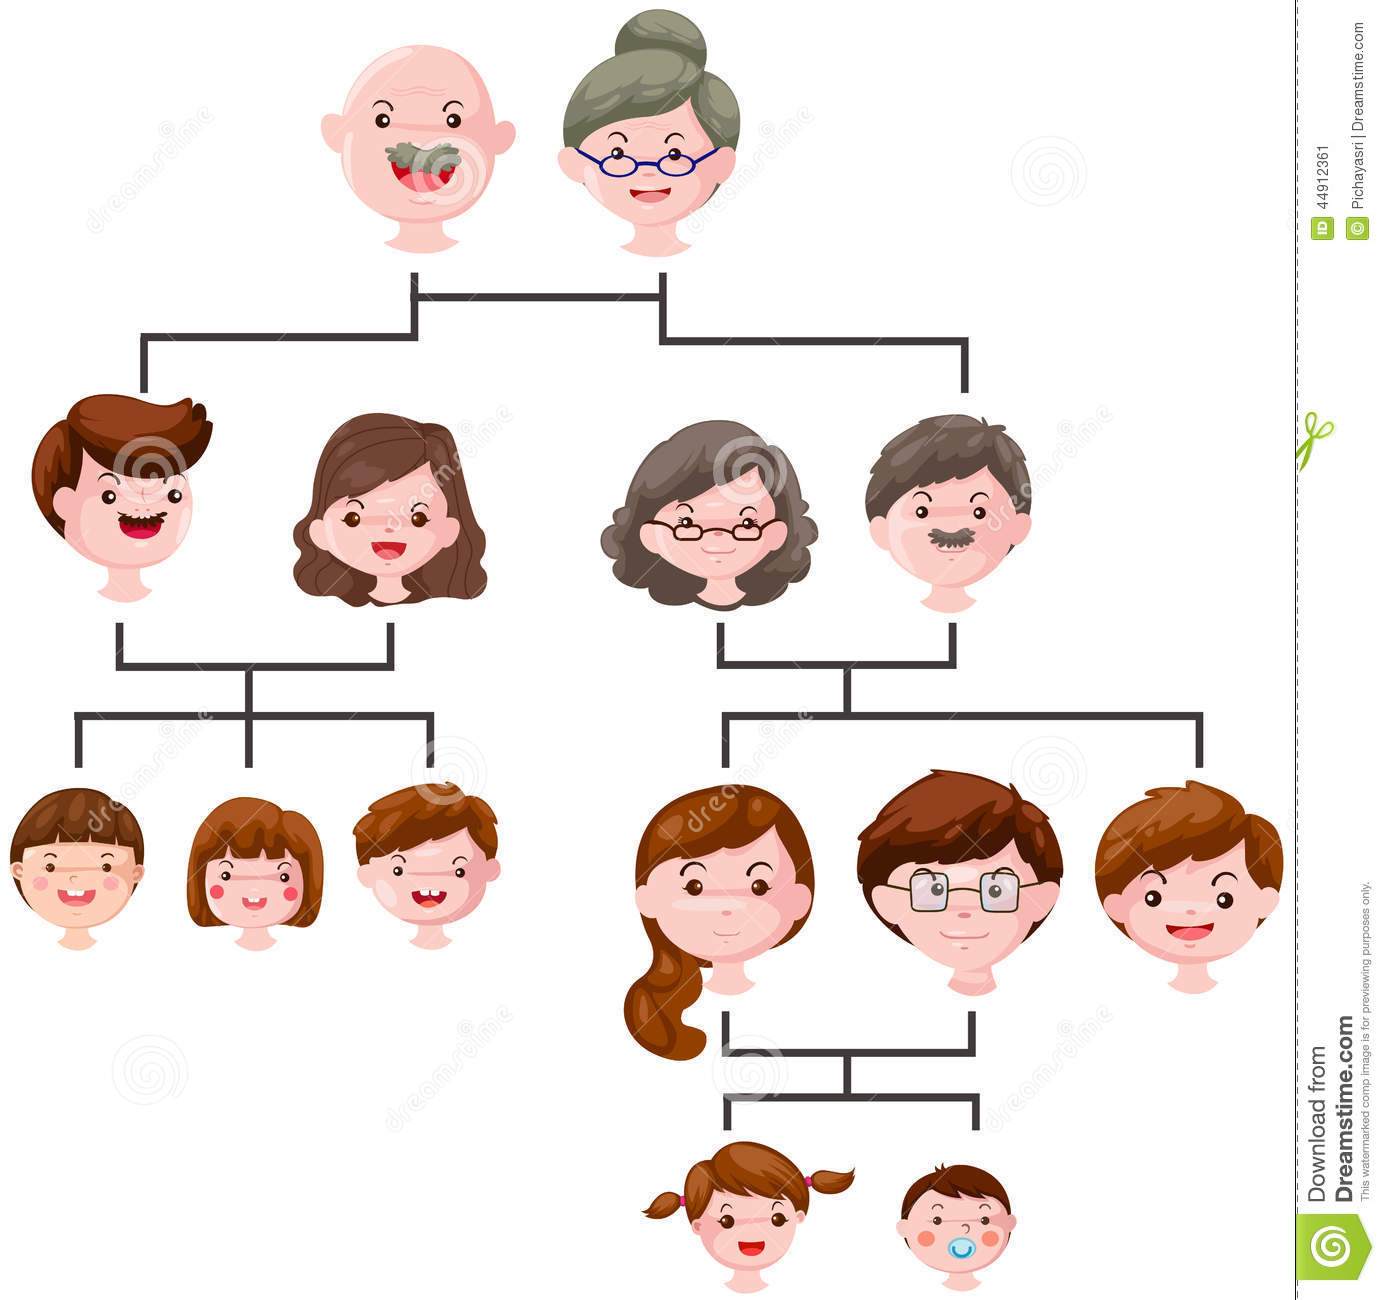 Cartoon Family Tree Stock Vector